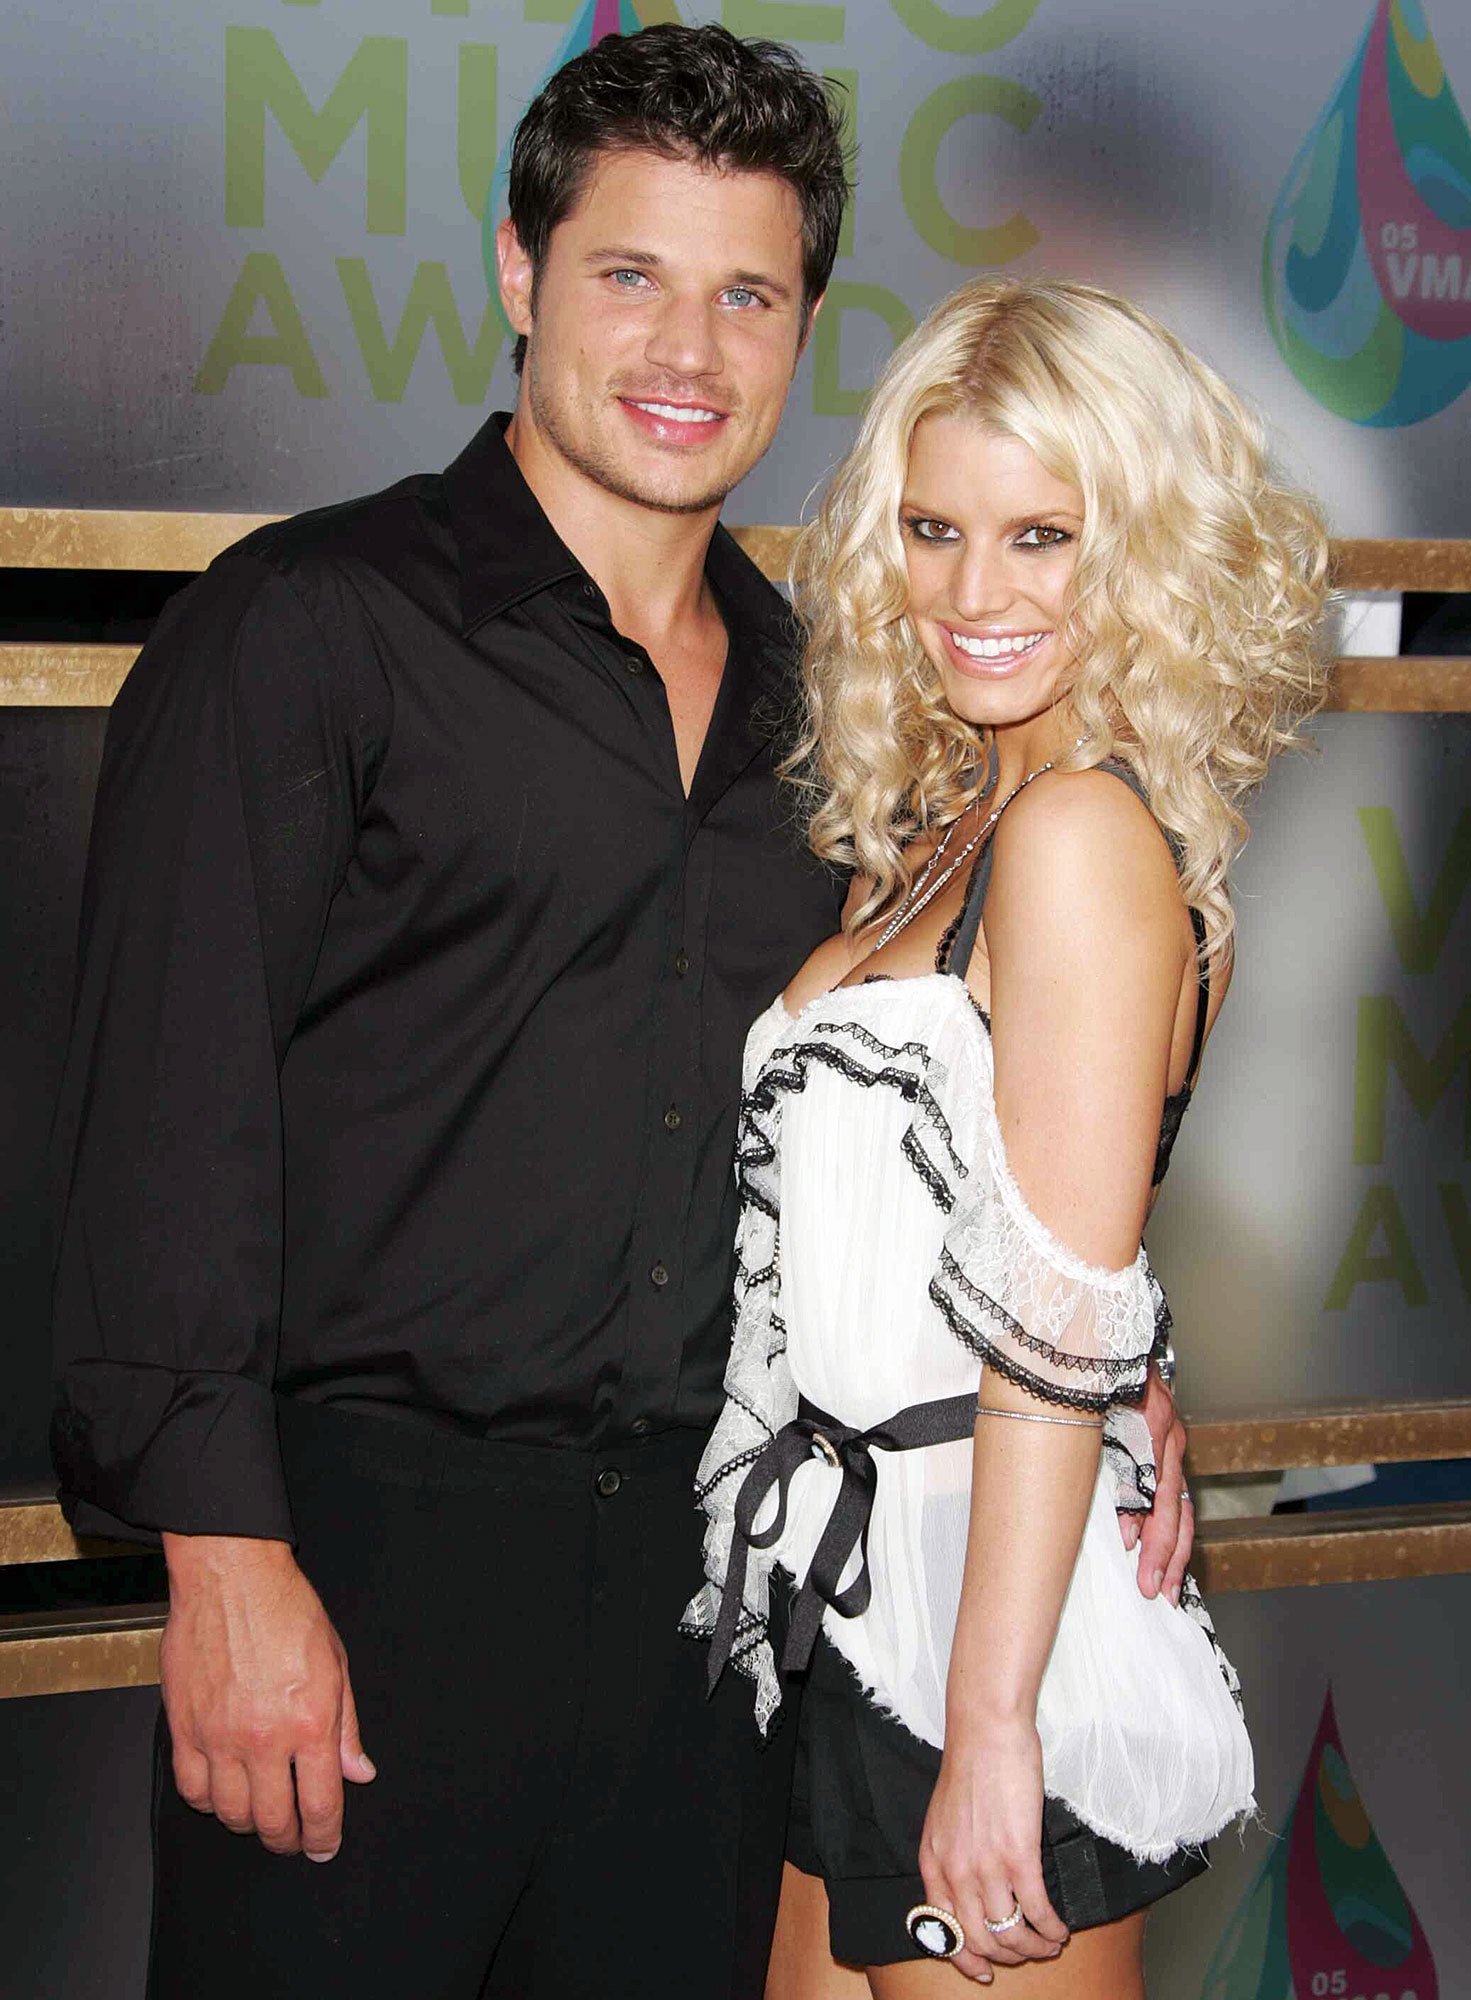 Nick Lachey and Jessica Simpson attend the MTV Video Music Awards in 2005 Jessica Simpson Looks Back on Her Failed Marriage to Nick Lachey